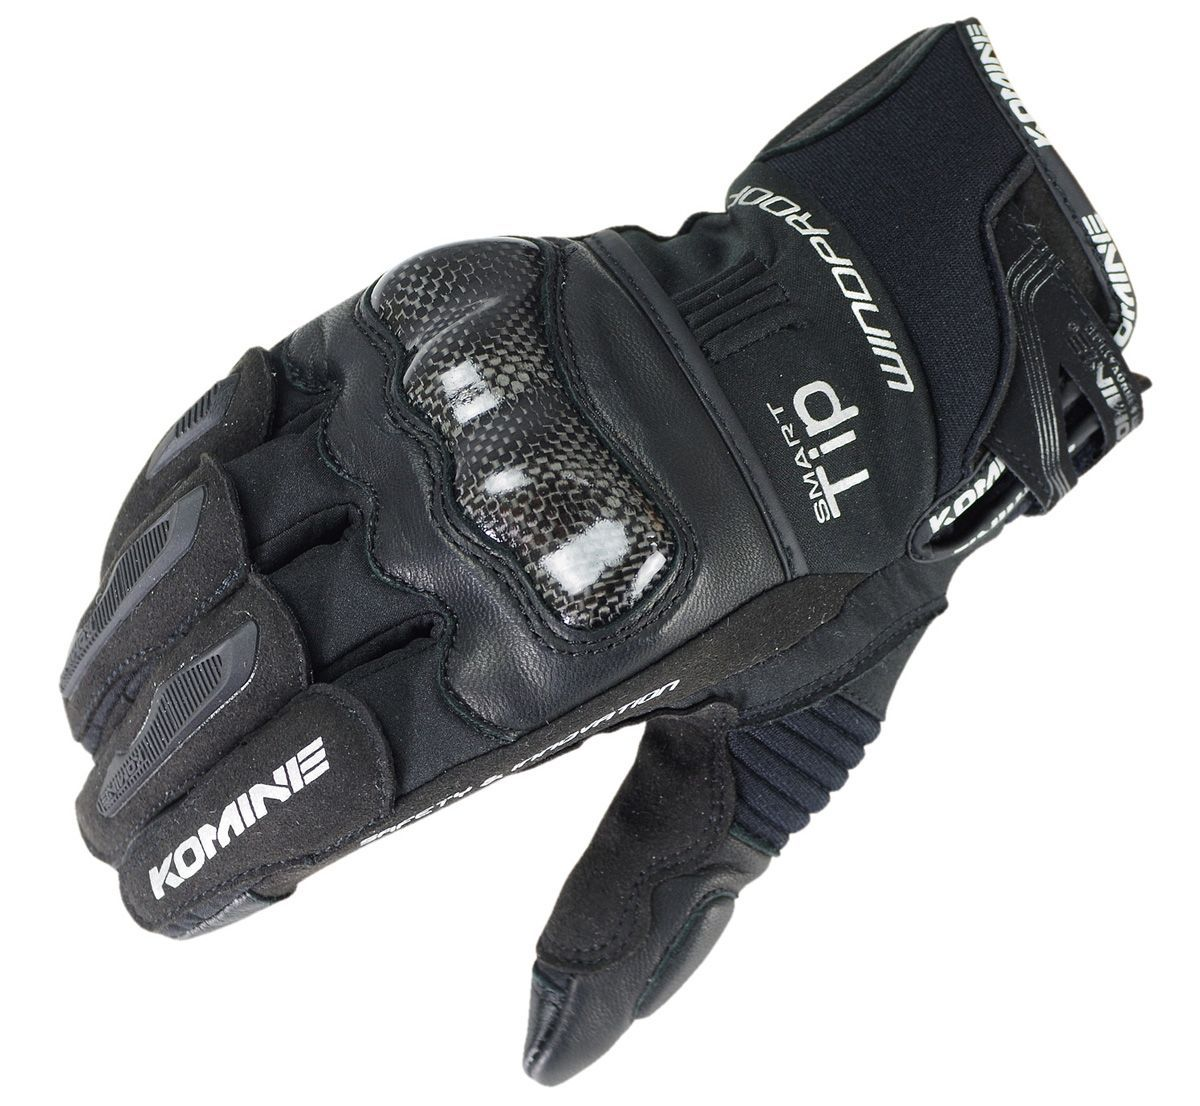 KOMINE GK-821 CarbonProtectWindproof GĂNG TAY